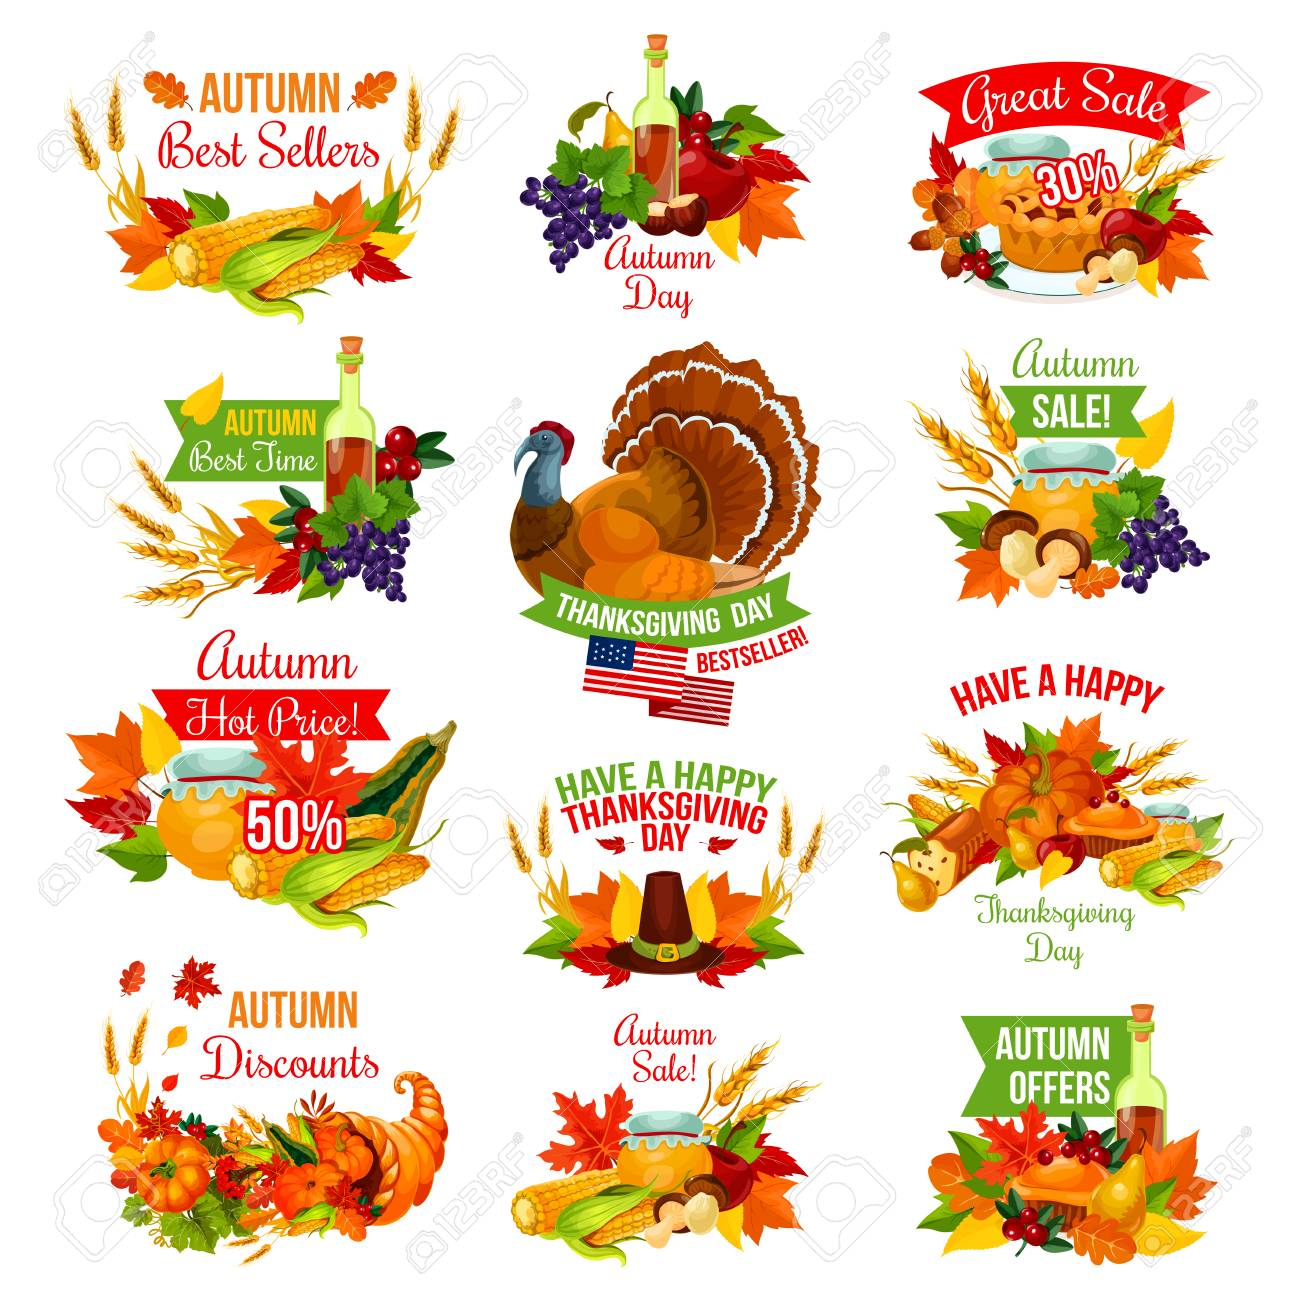 Thanksgiving Day Sale Icons For Autumn Seasonal Promo Discount Royalty Free Cliparts Vectors And Stock Illustration Image 86750011